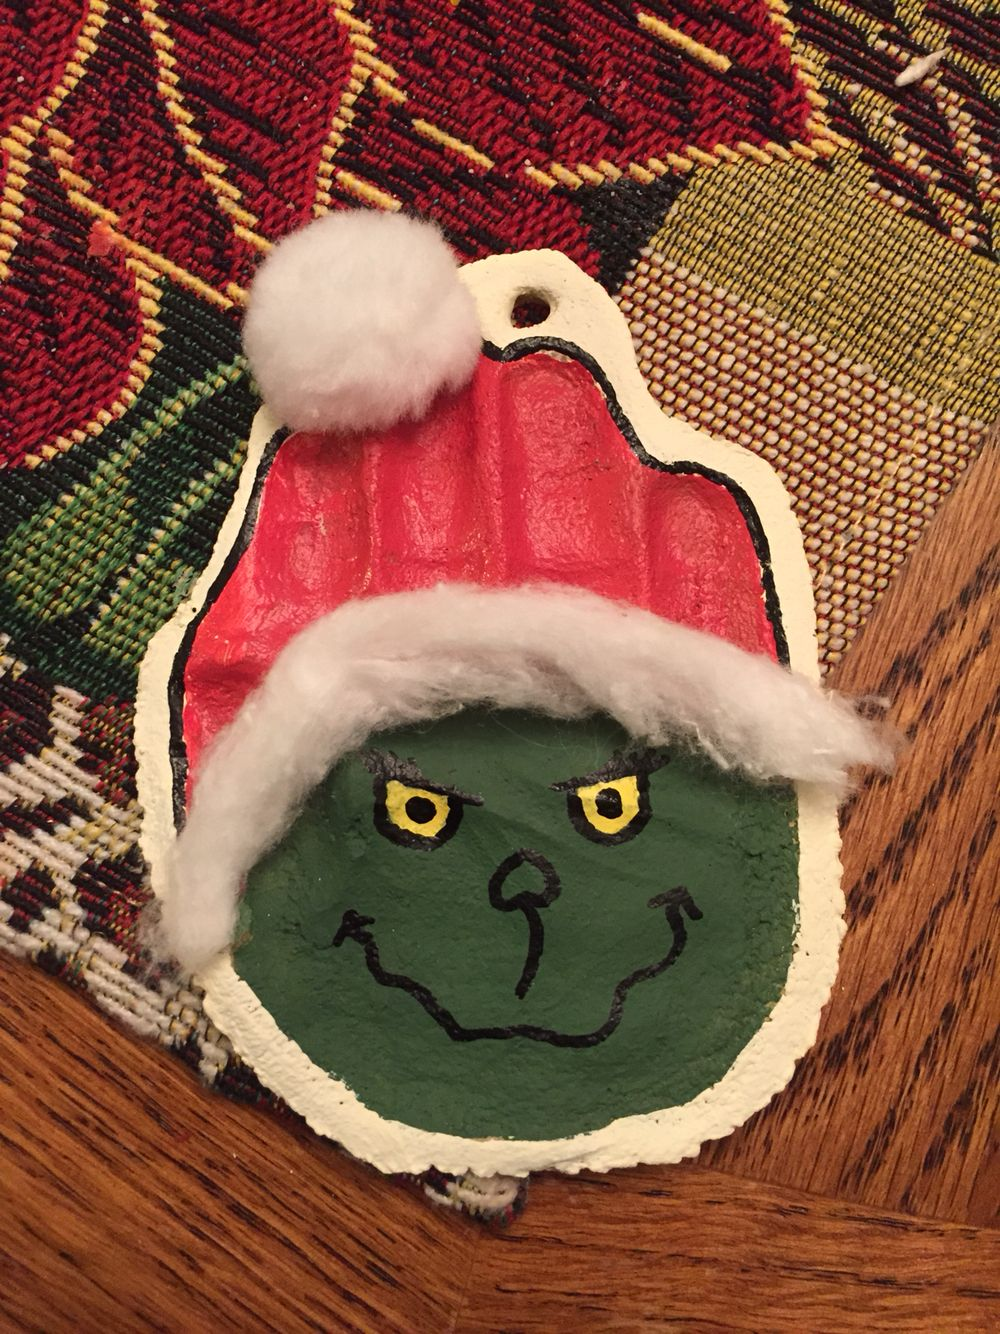 The Grinch Salt Dough Ornament Winter Crafts For Kids Christmas Crafts For Kids To Make Salt Dough Ornaments